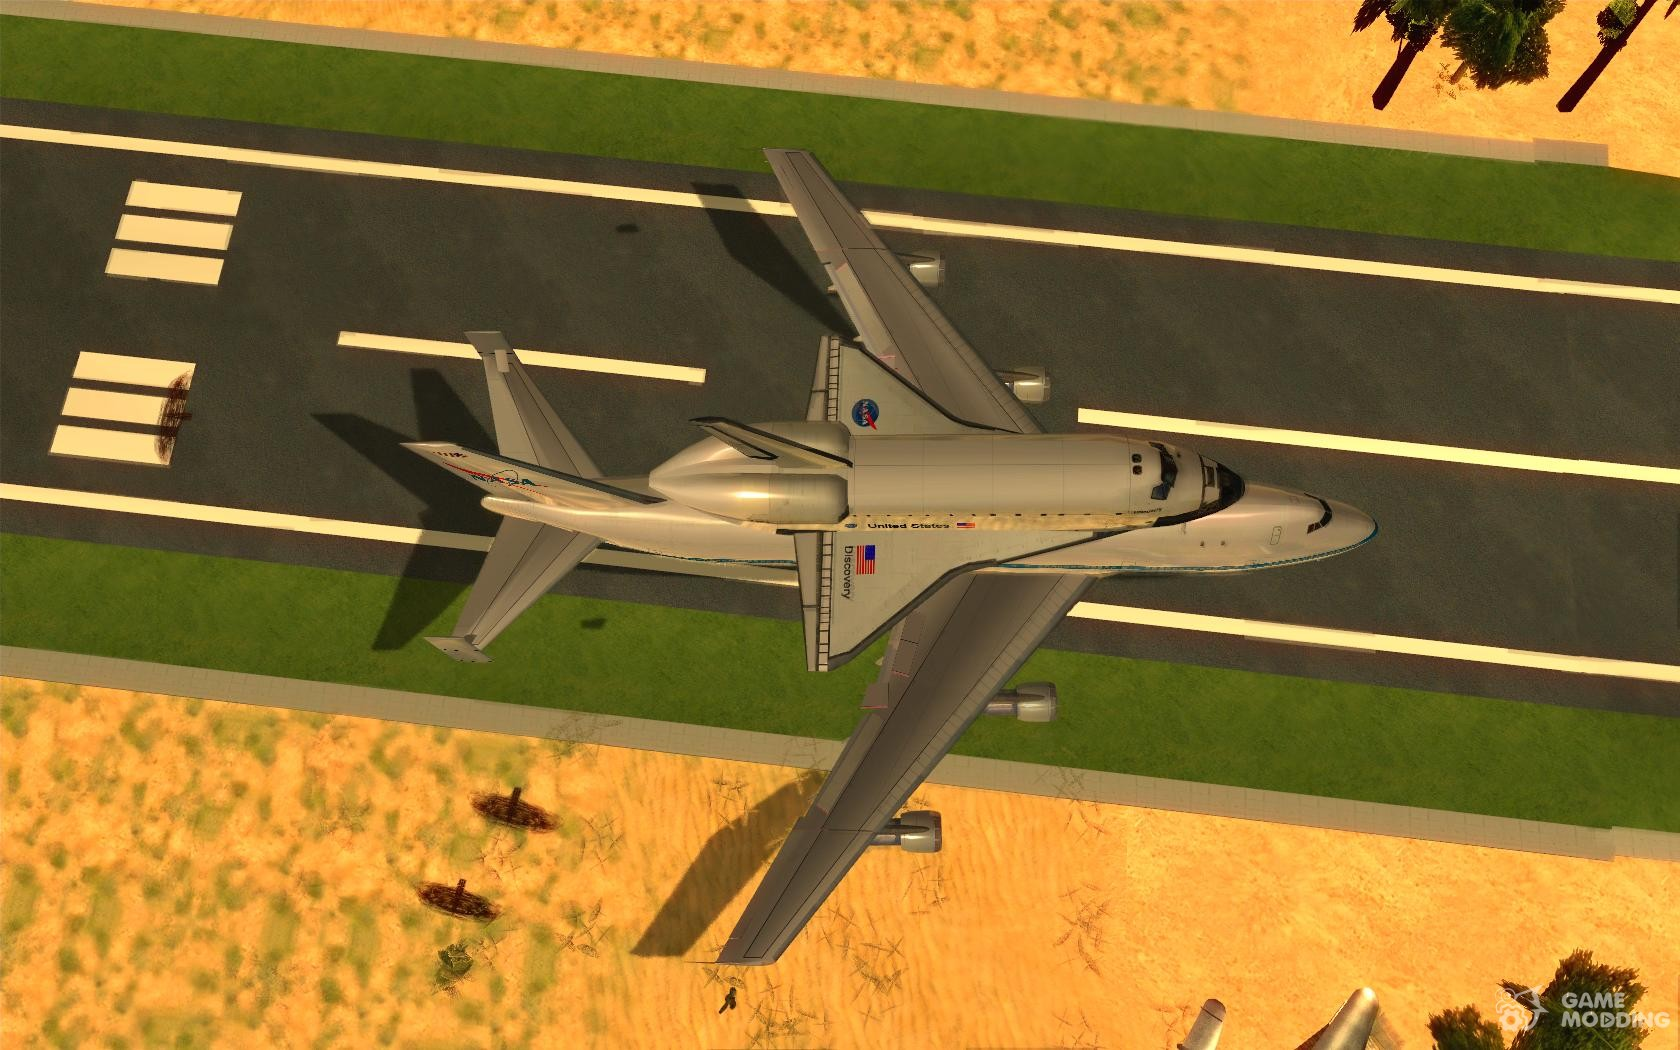 gta 5 space shuttle mission - photo #13